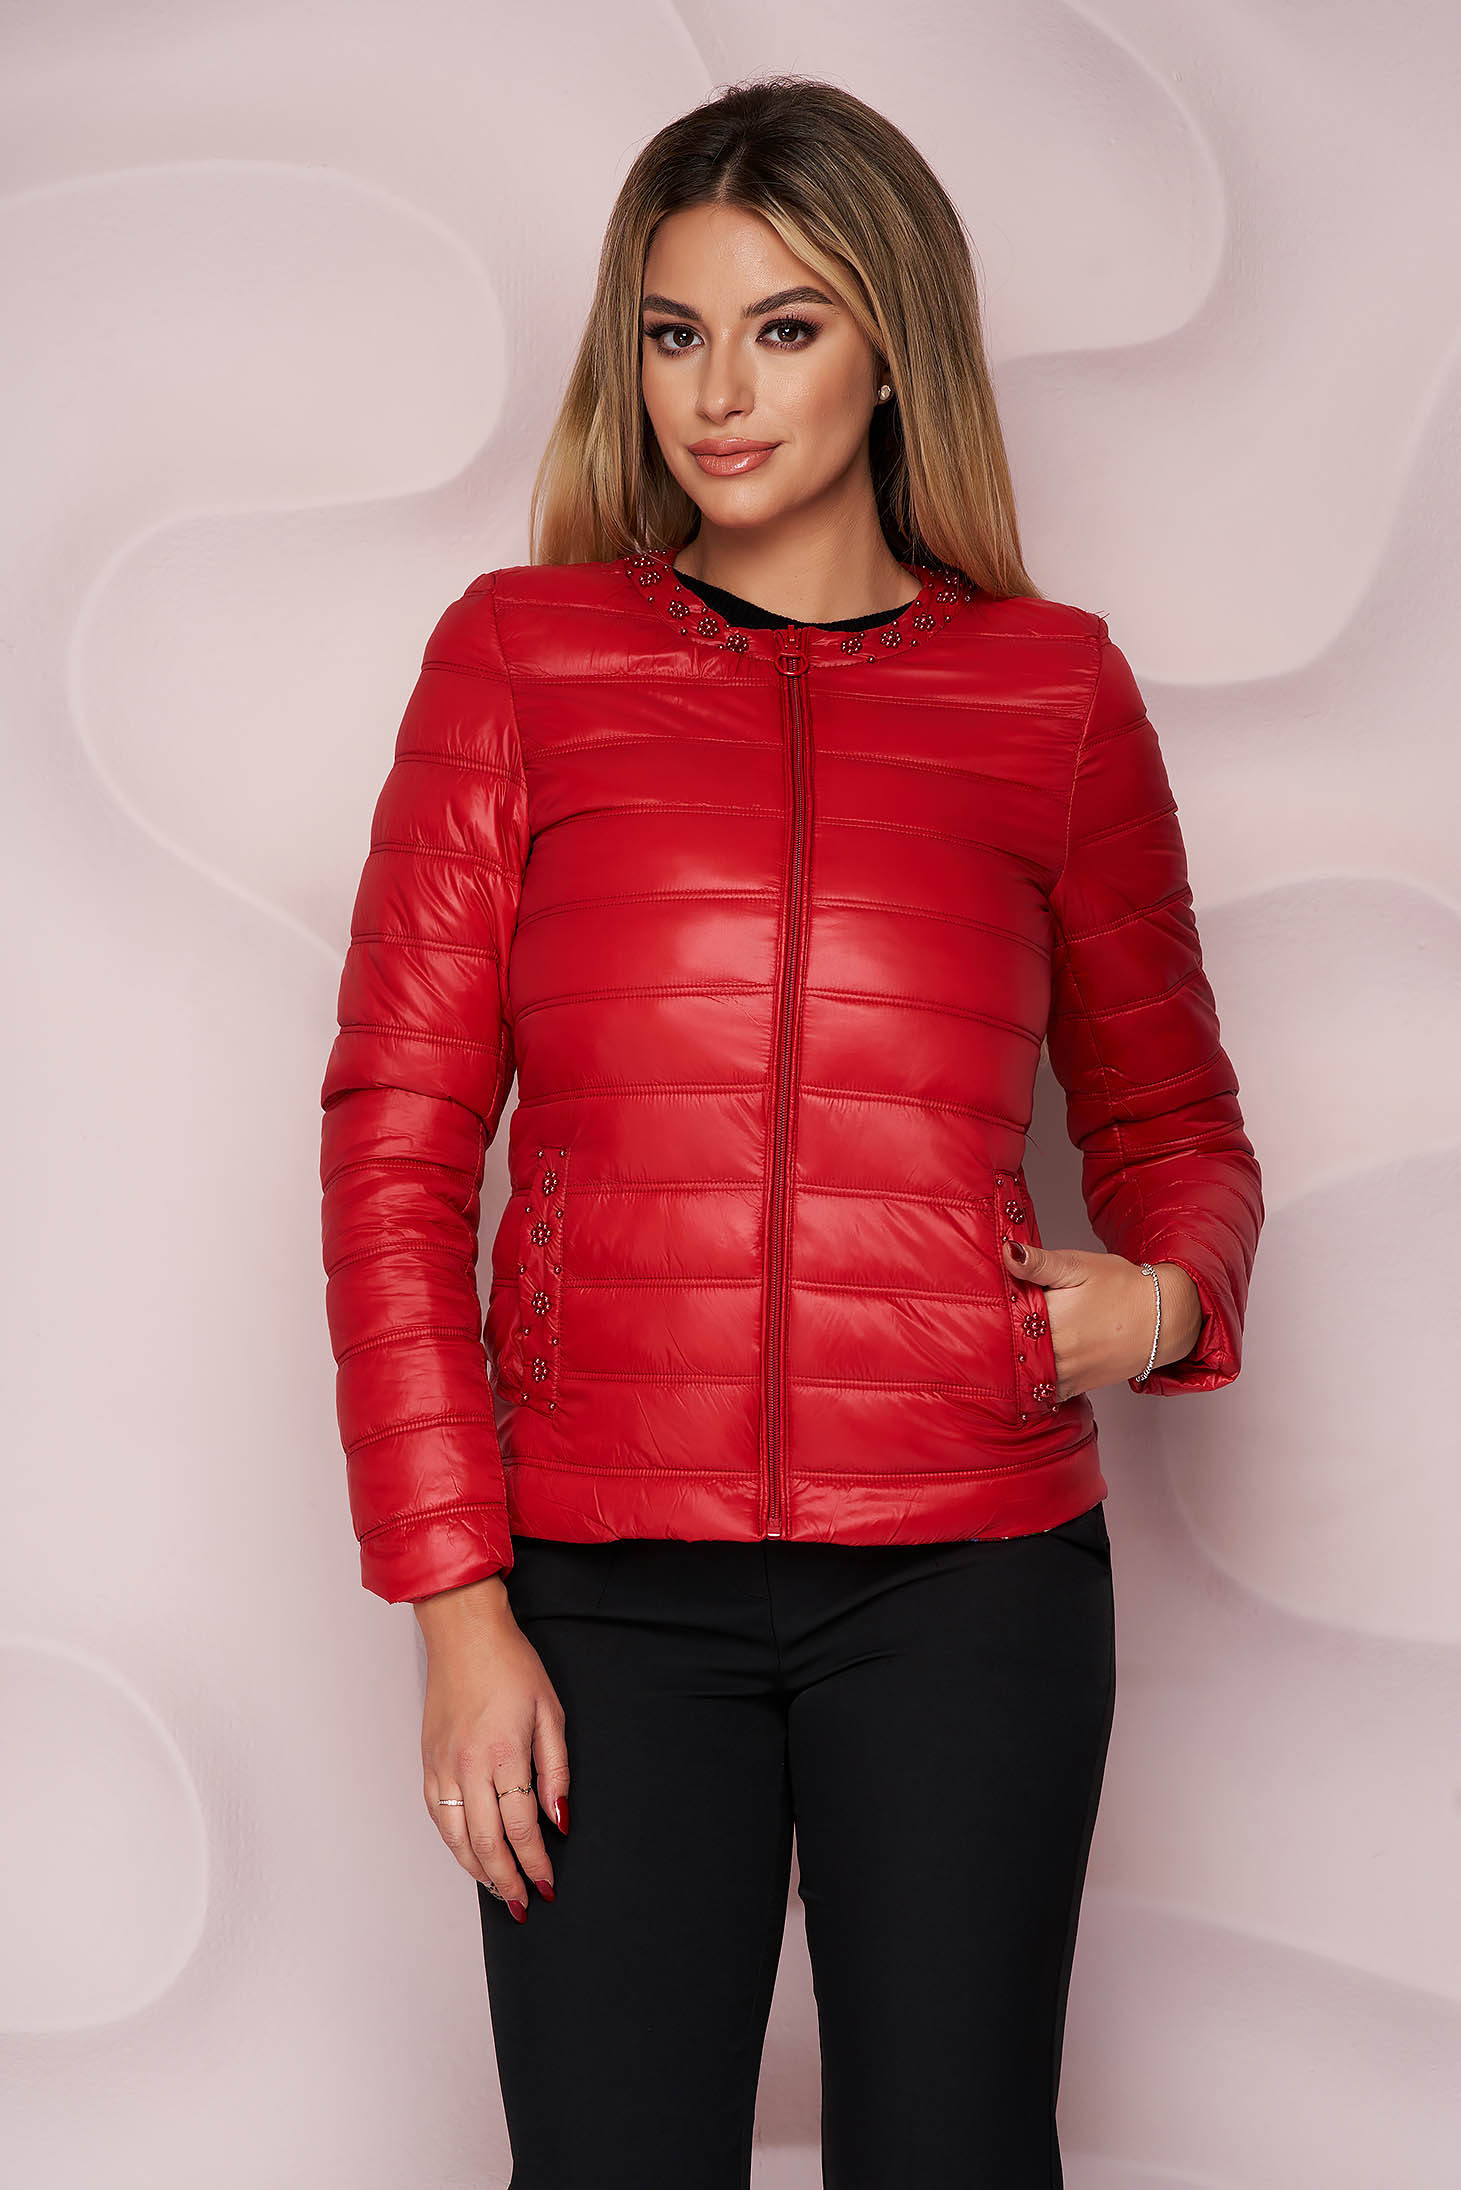 Red jacket from slicker thin fabric with pockets with pearls straight